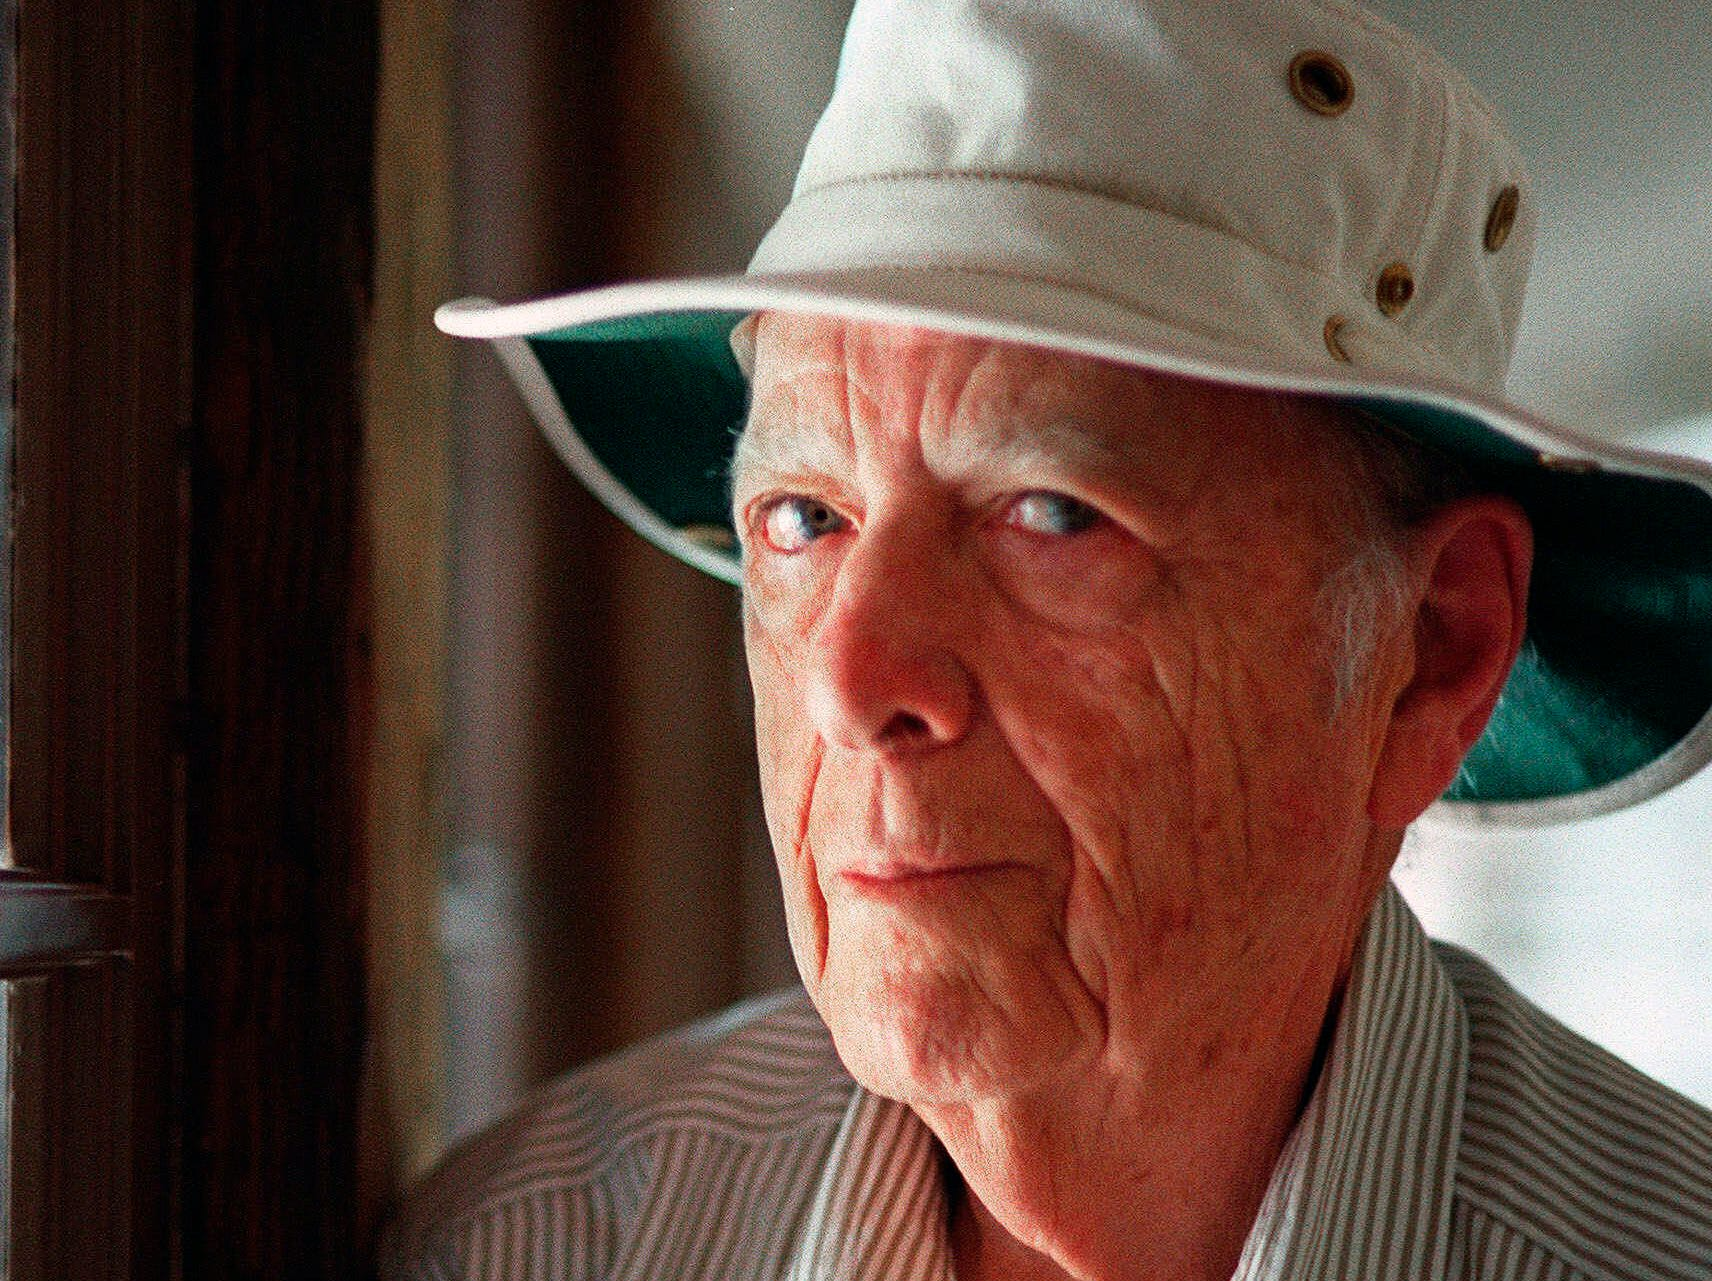 This May 15, 2000, file photo, shows Pulitzer Prize-winning author Herman Wouk in Palm Springs, Calif. Wouk died in his sleep early Friday, May 17, 2019, according to his literary agent Amy Rennert. He was 103.